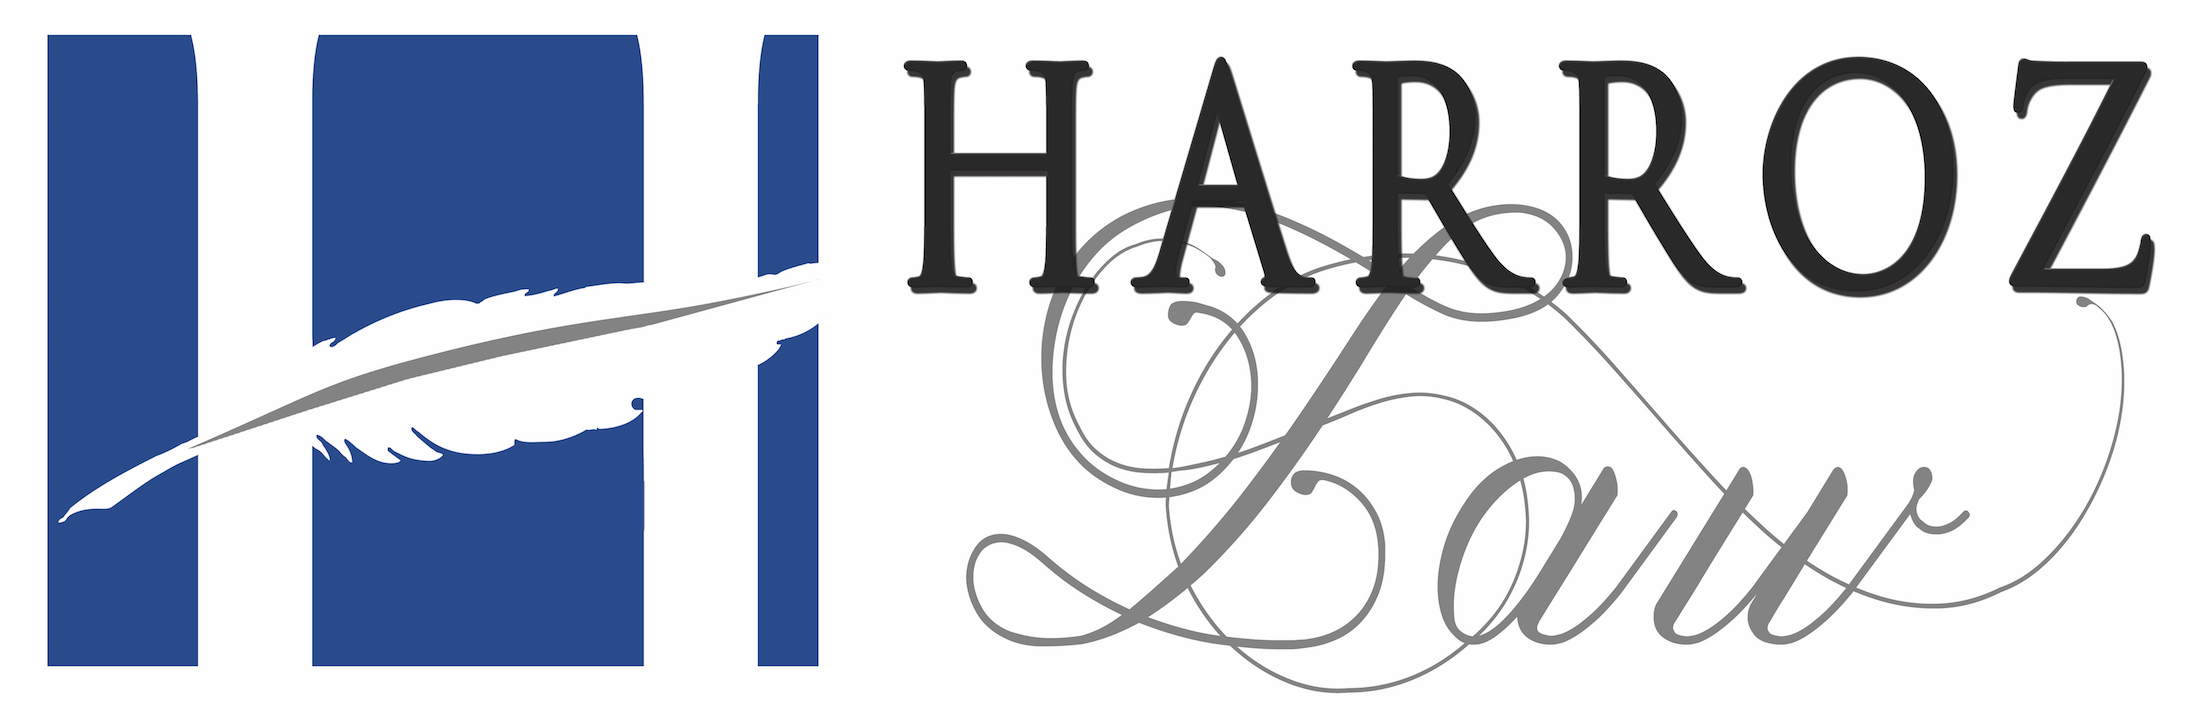 HARROZ LAW, PLLC Profile Picture